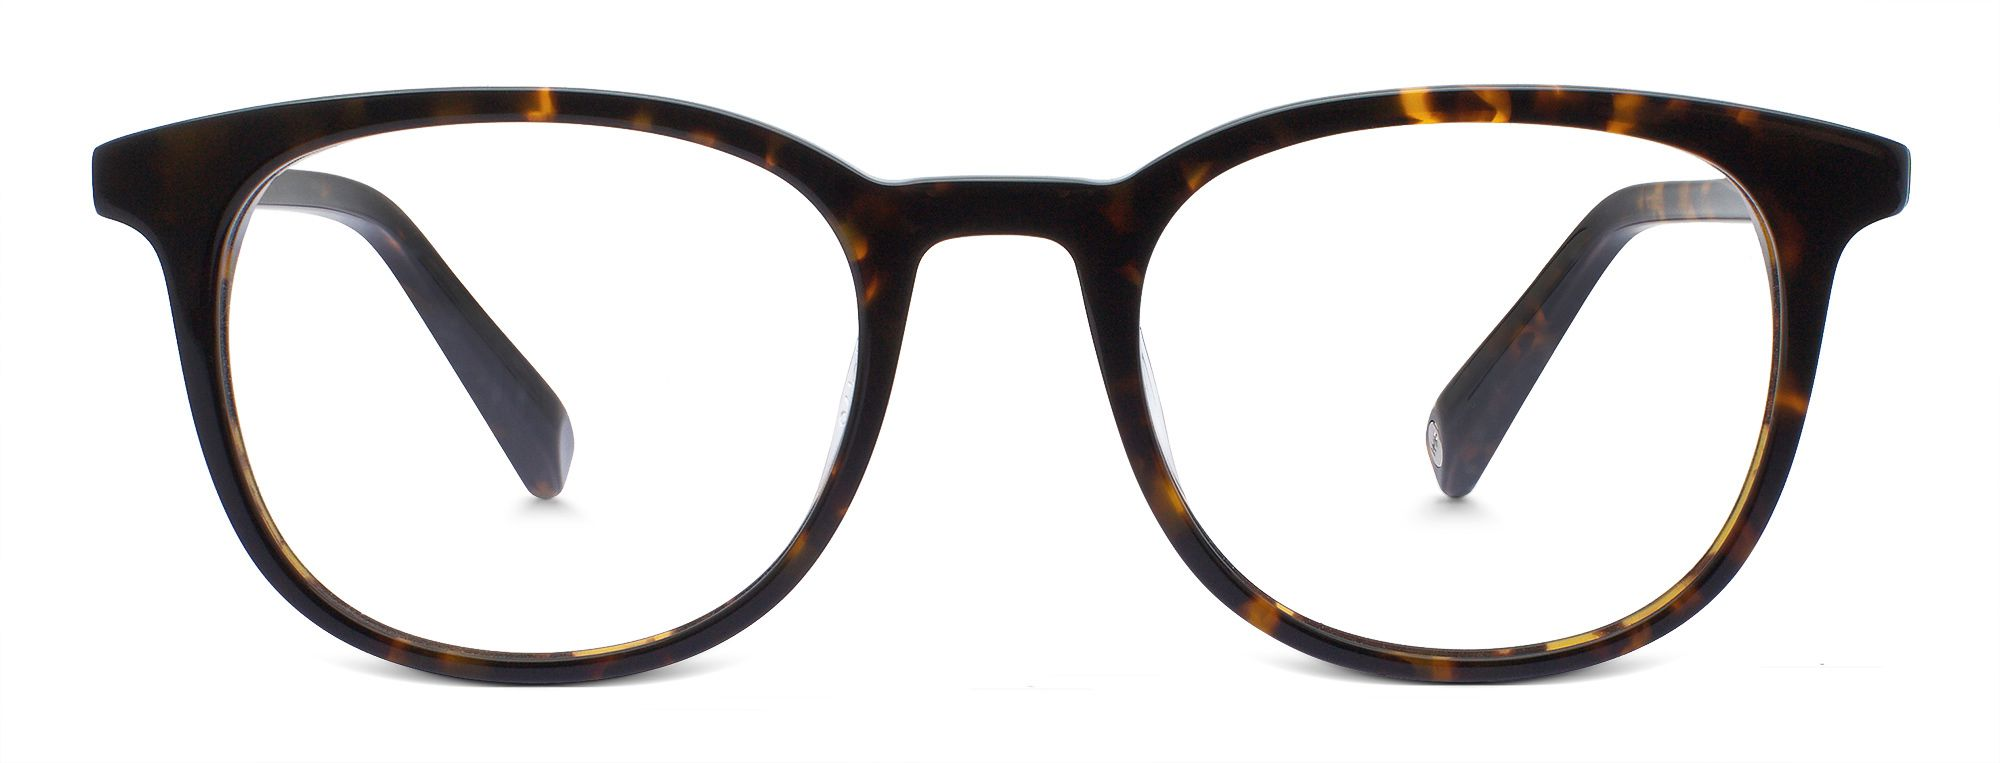 Men durand eyeglasses whiskey tortoise front 1300 400311b4